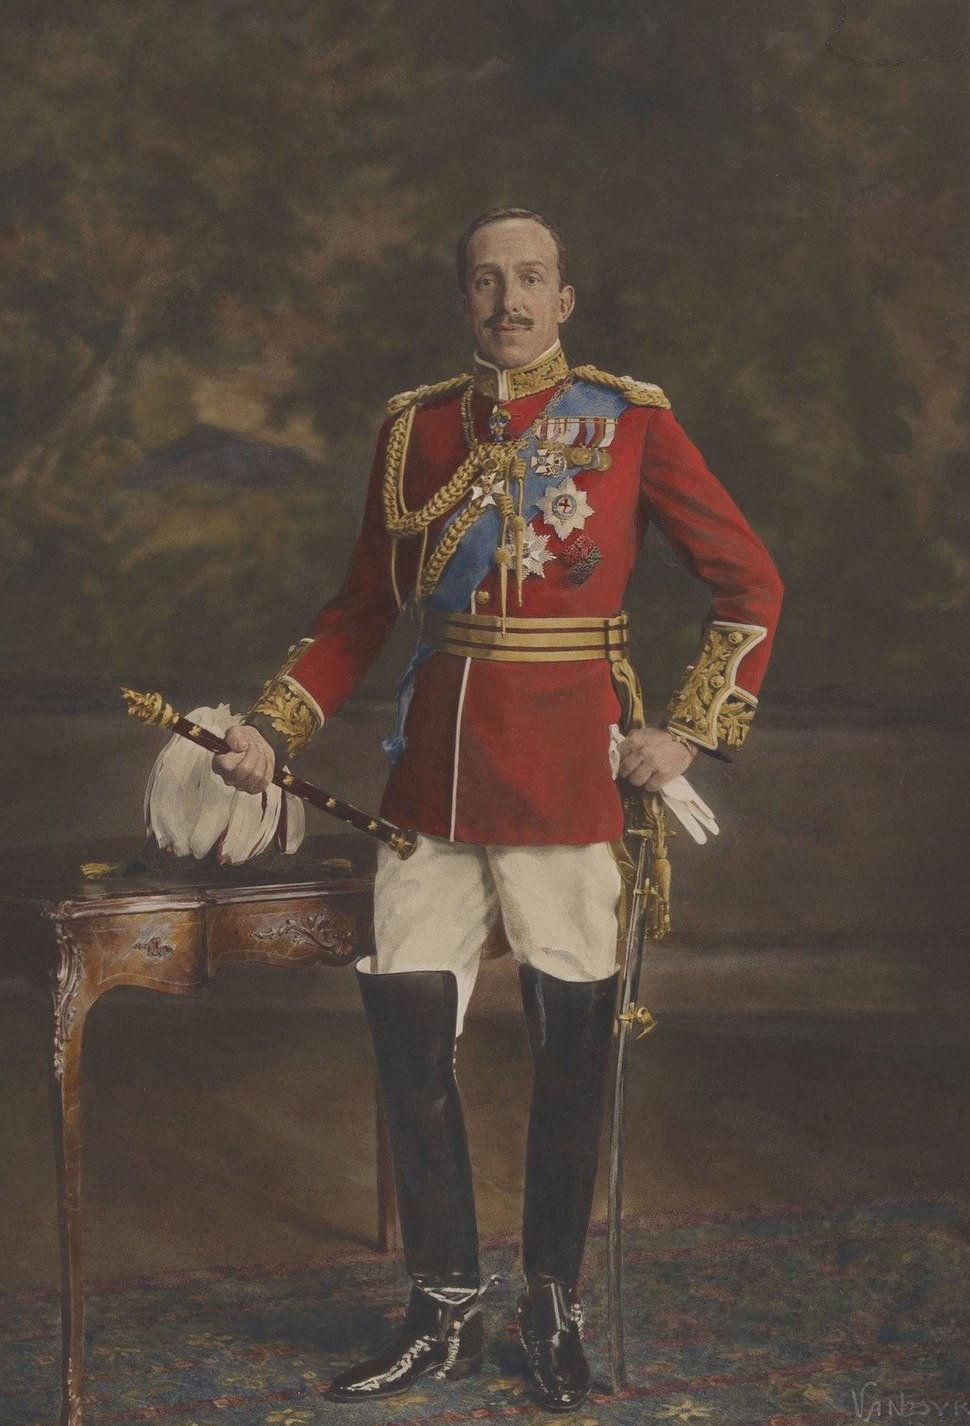 Alfonso XIII in uniform of a British Field Marshall